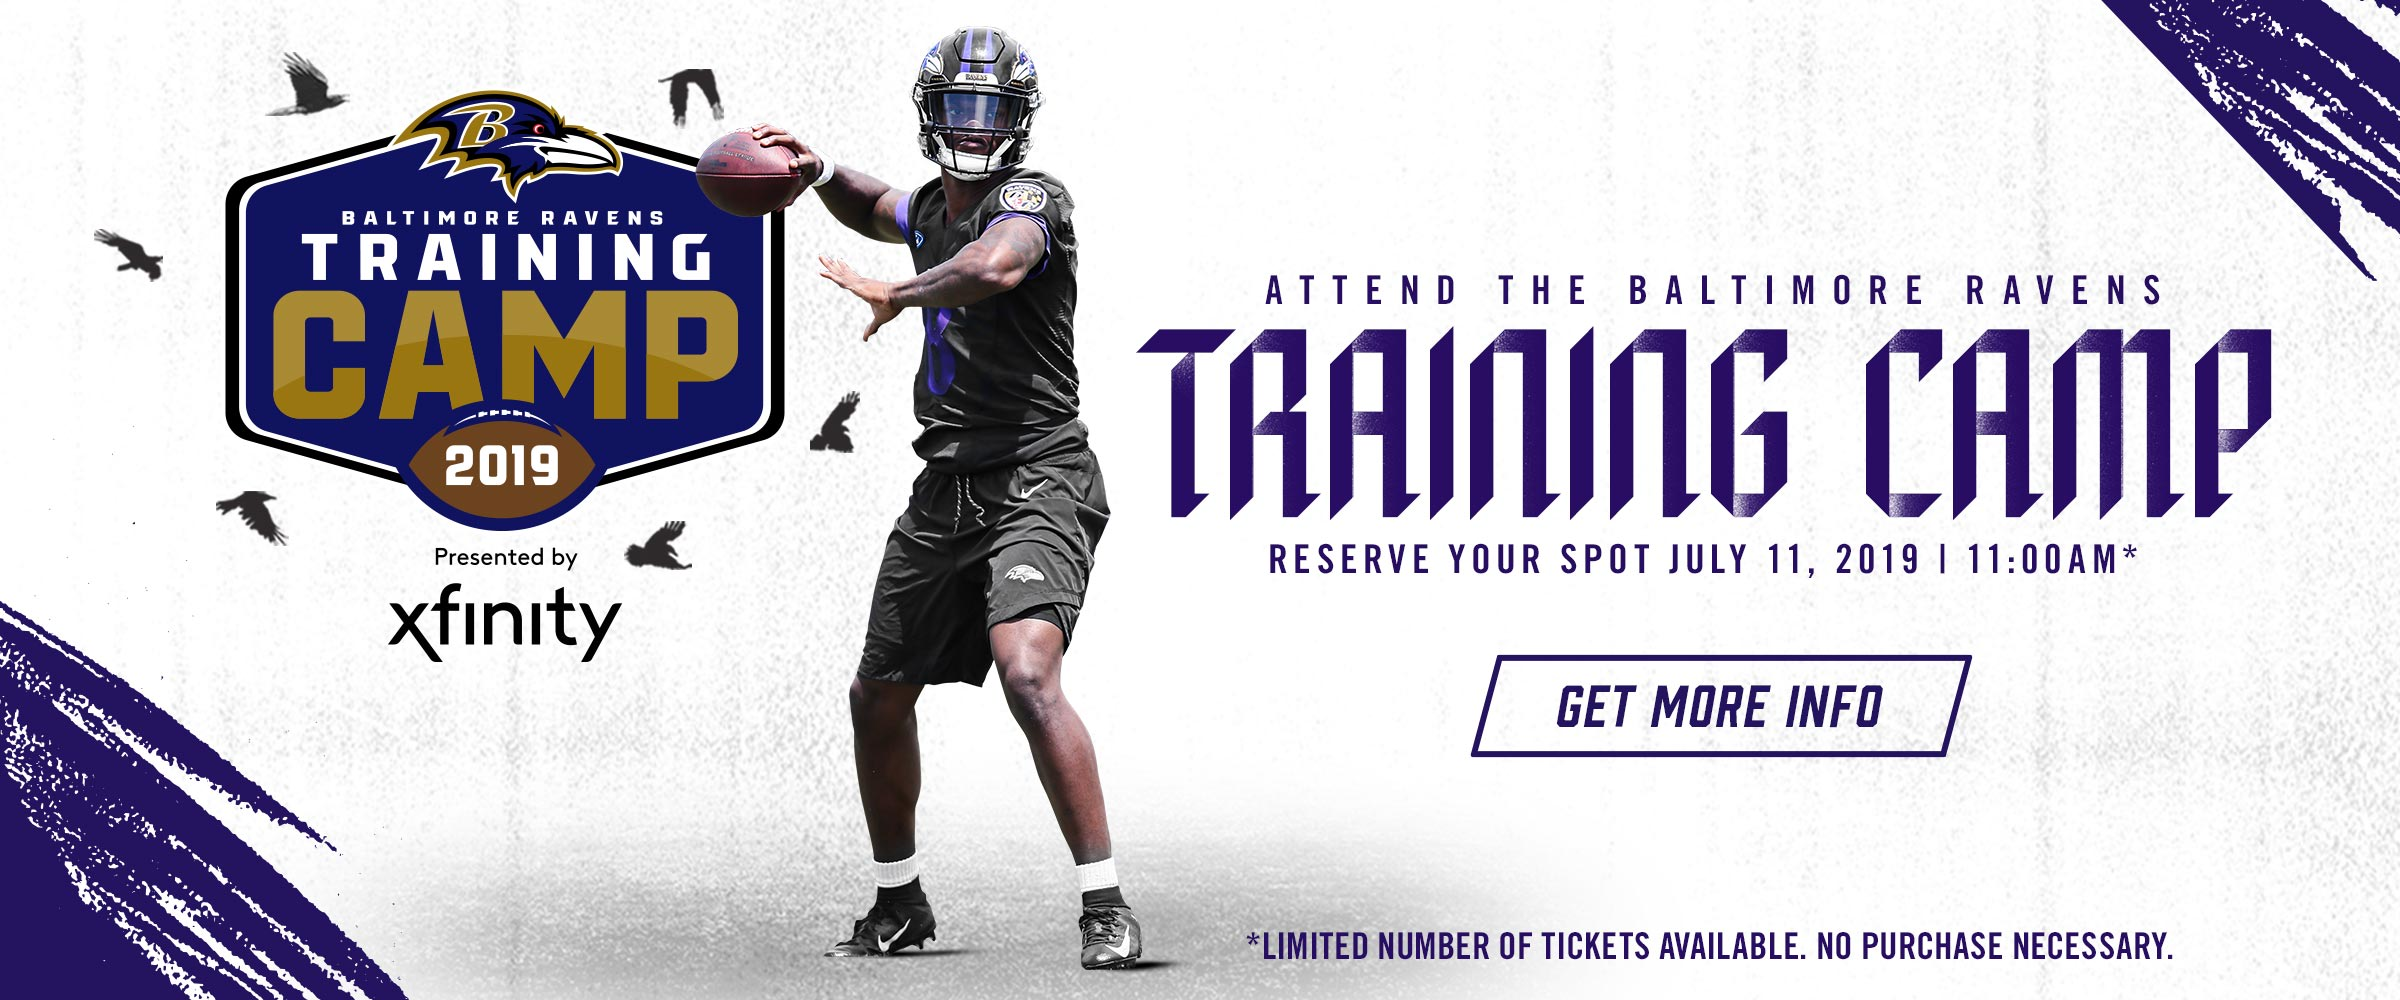 Learn More About Training Camp